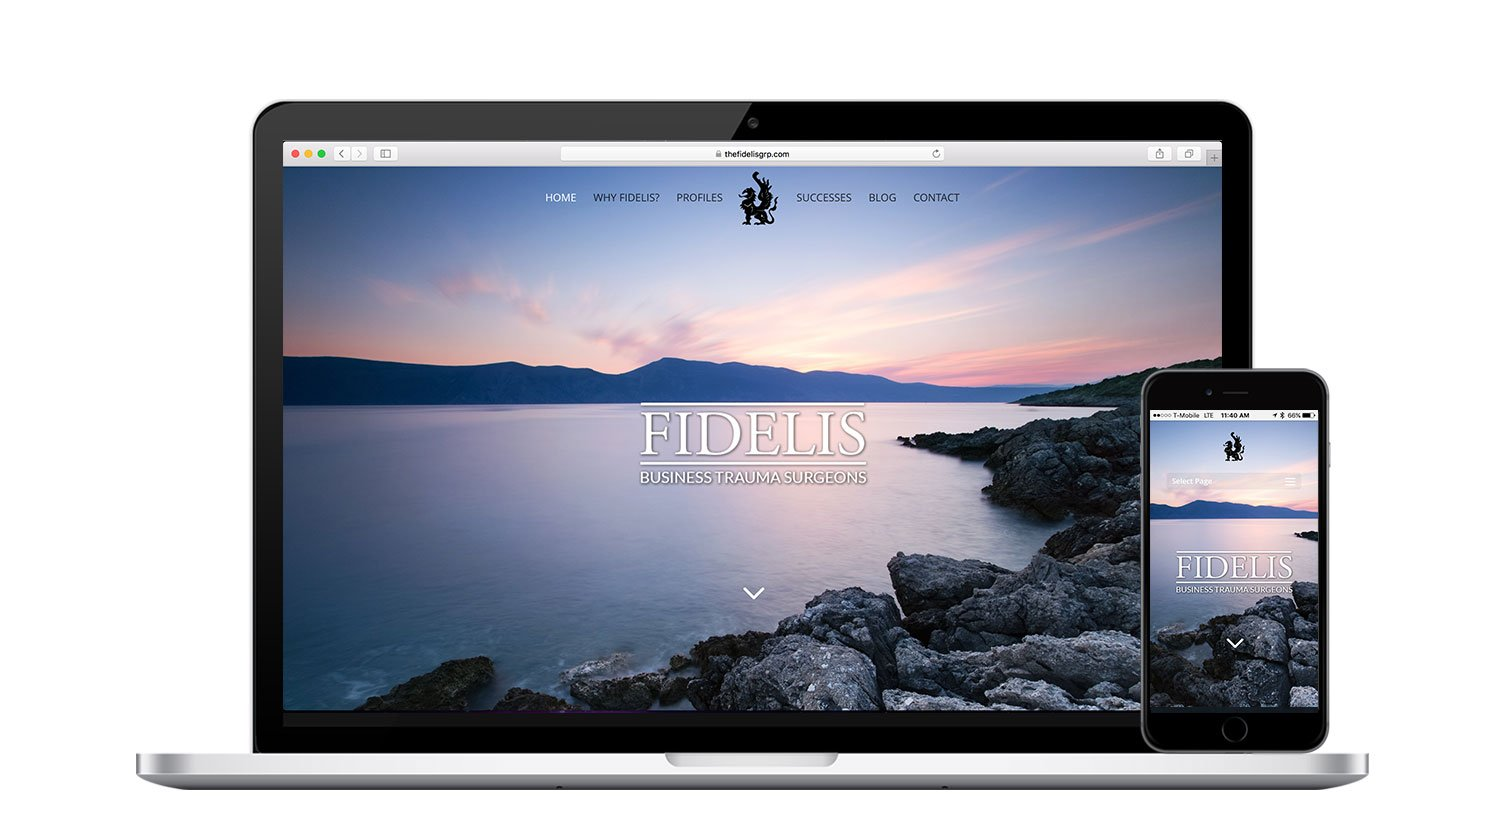 The Fidelis Group Responsive Website